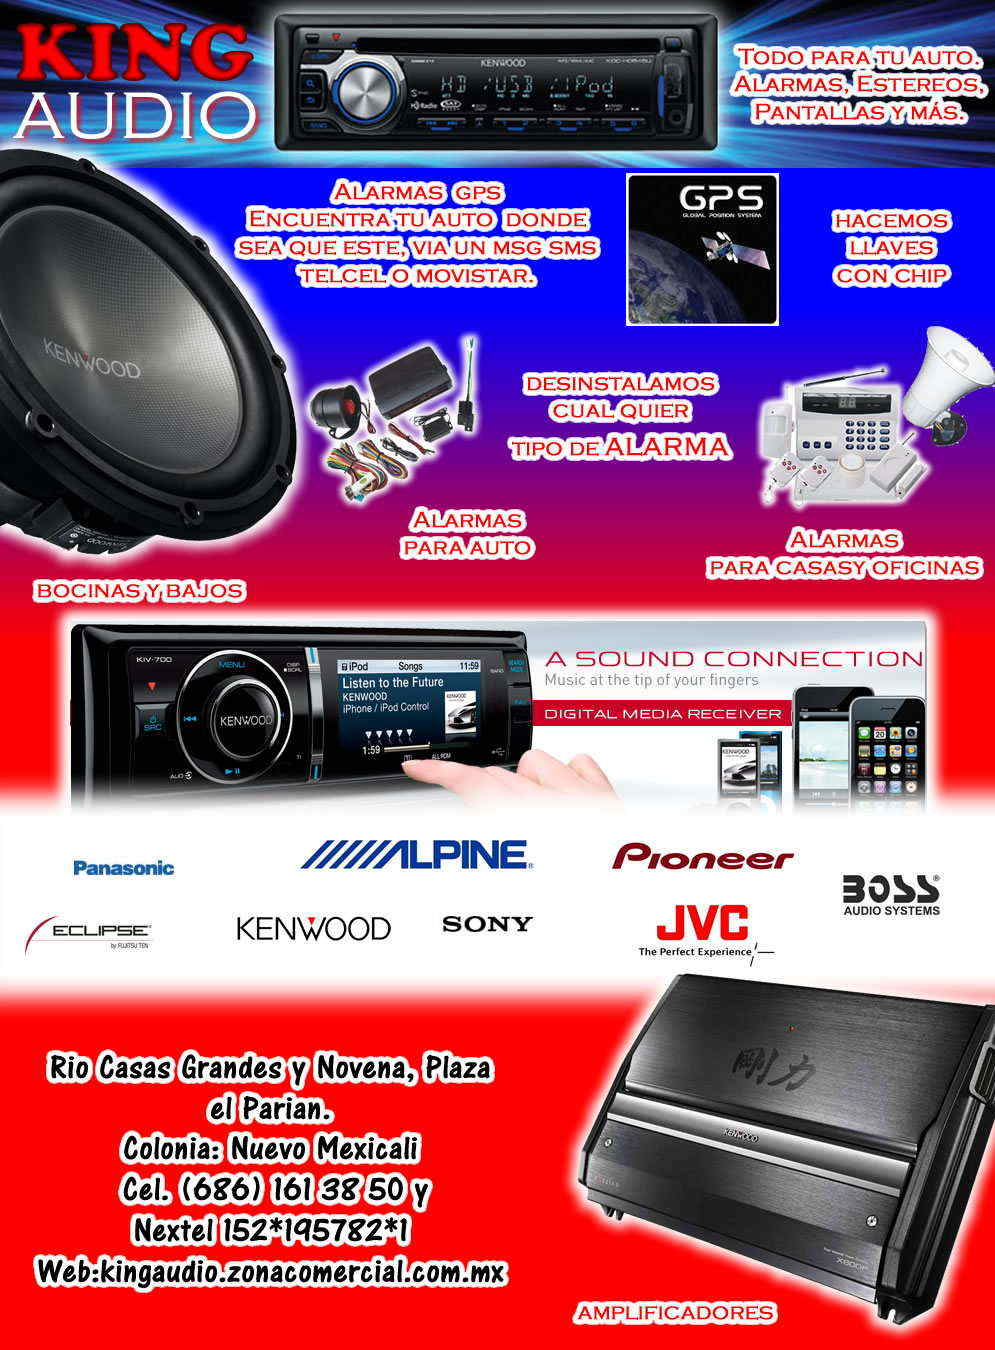 King audio en mexicali anunciado por for Todo para tu casa